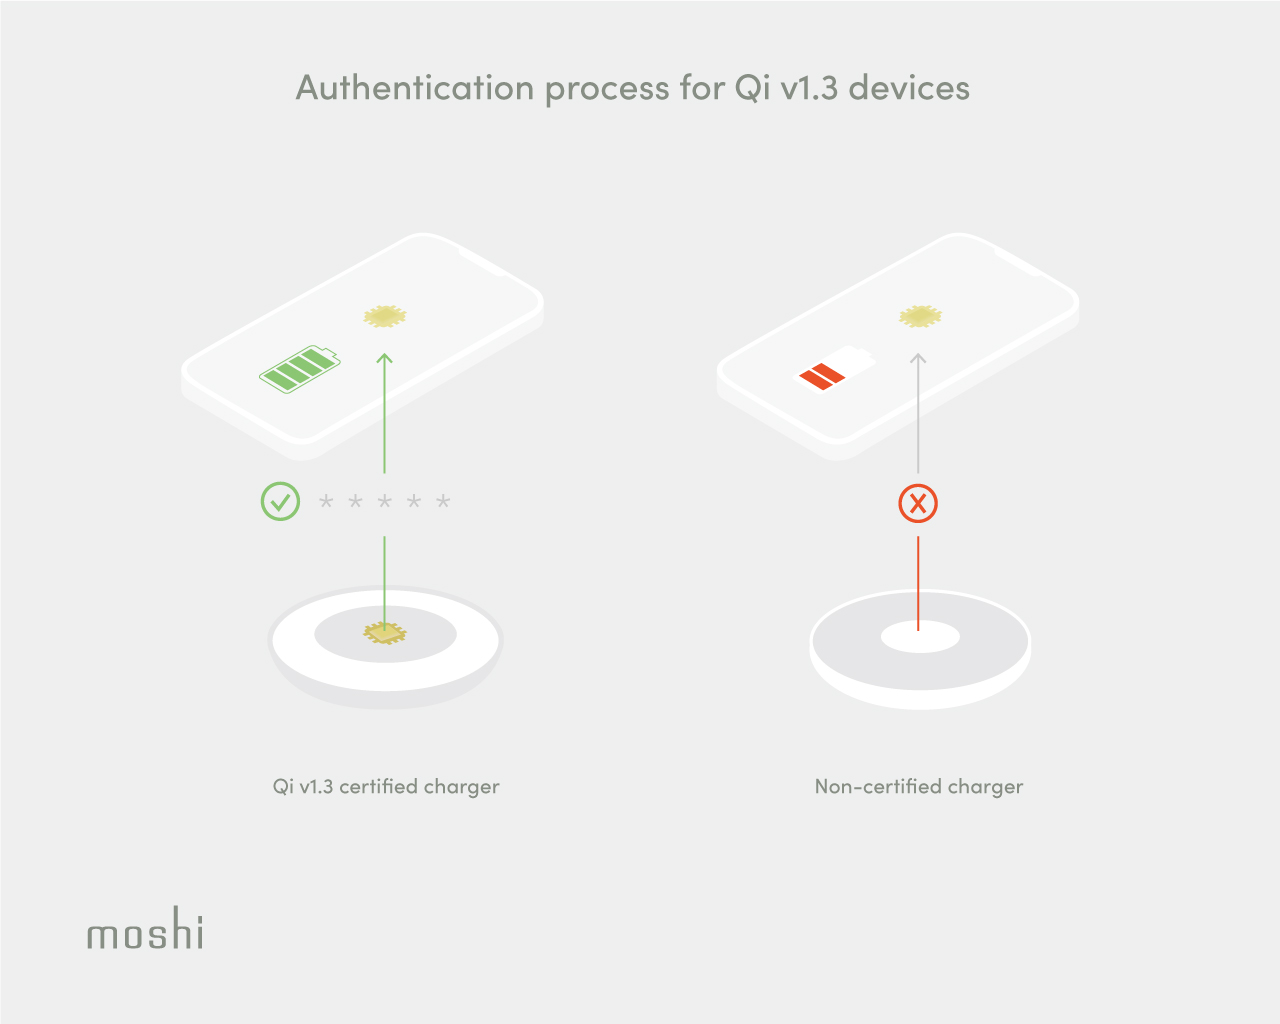 An illustration showing how authentication will work for Qi v1.3 compared to the current non-authenticated system